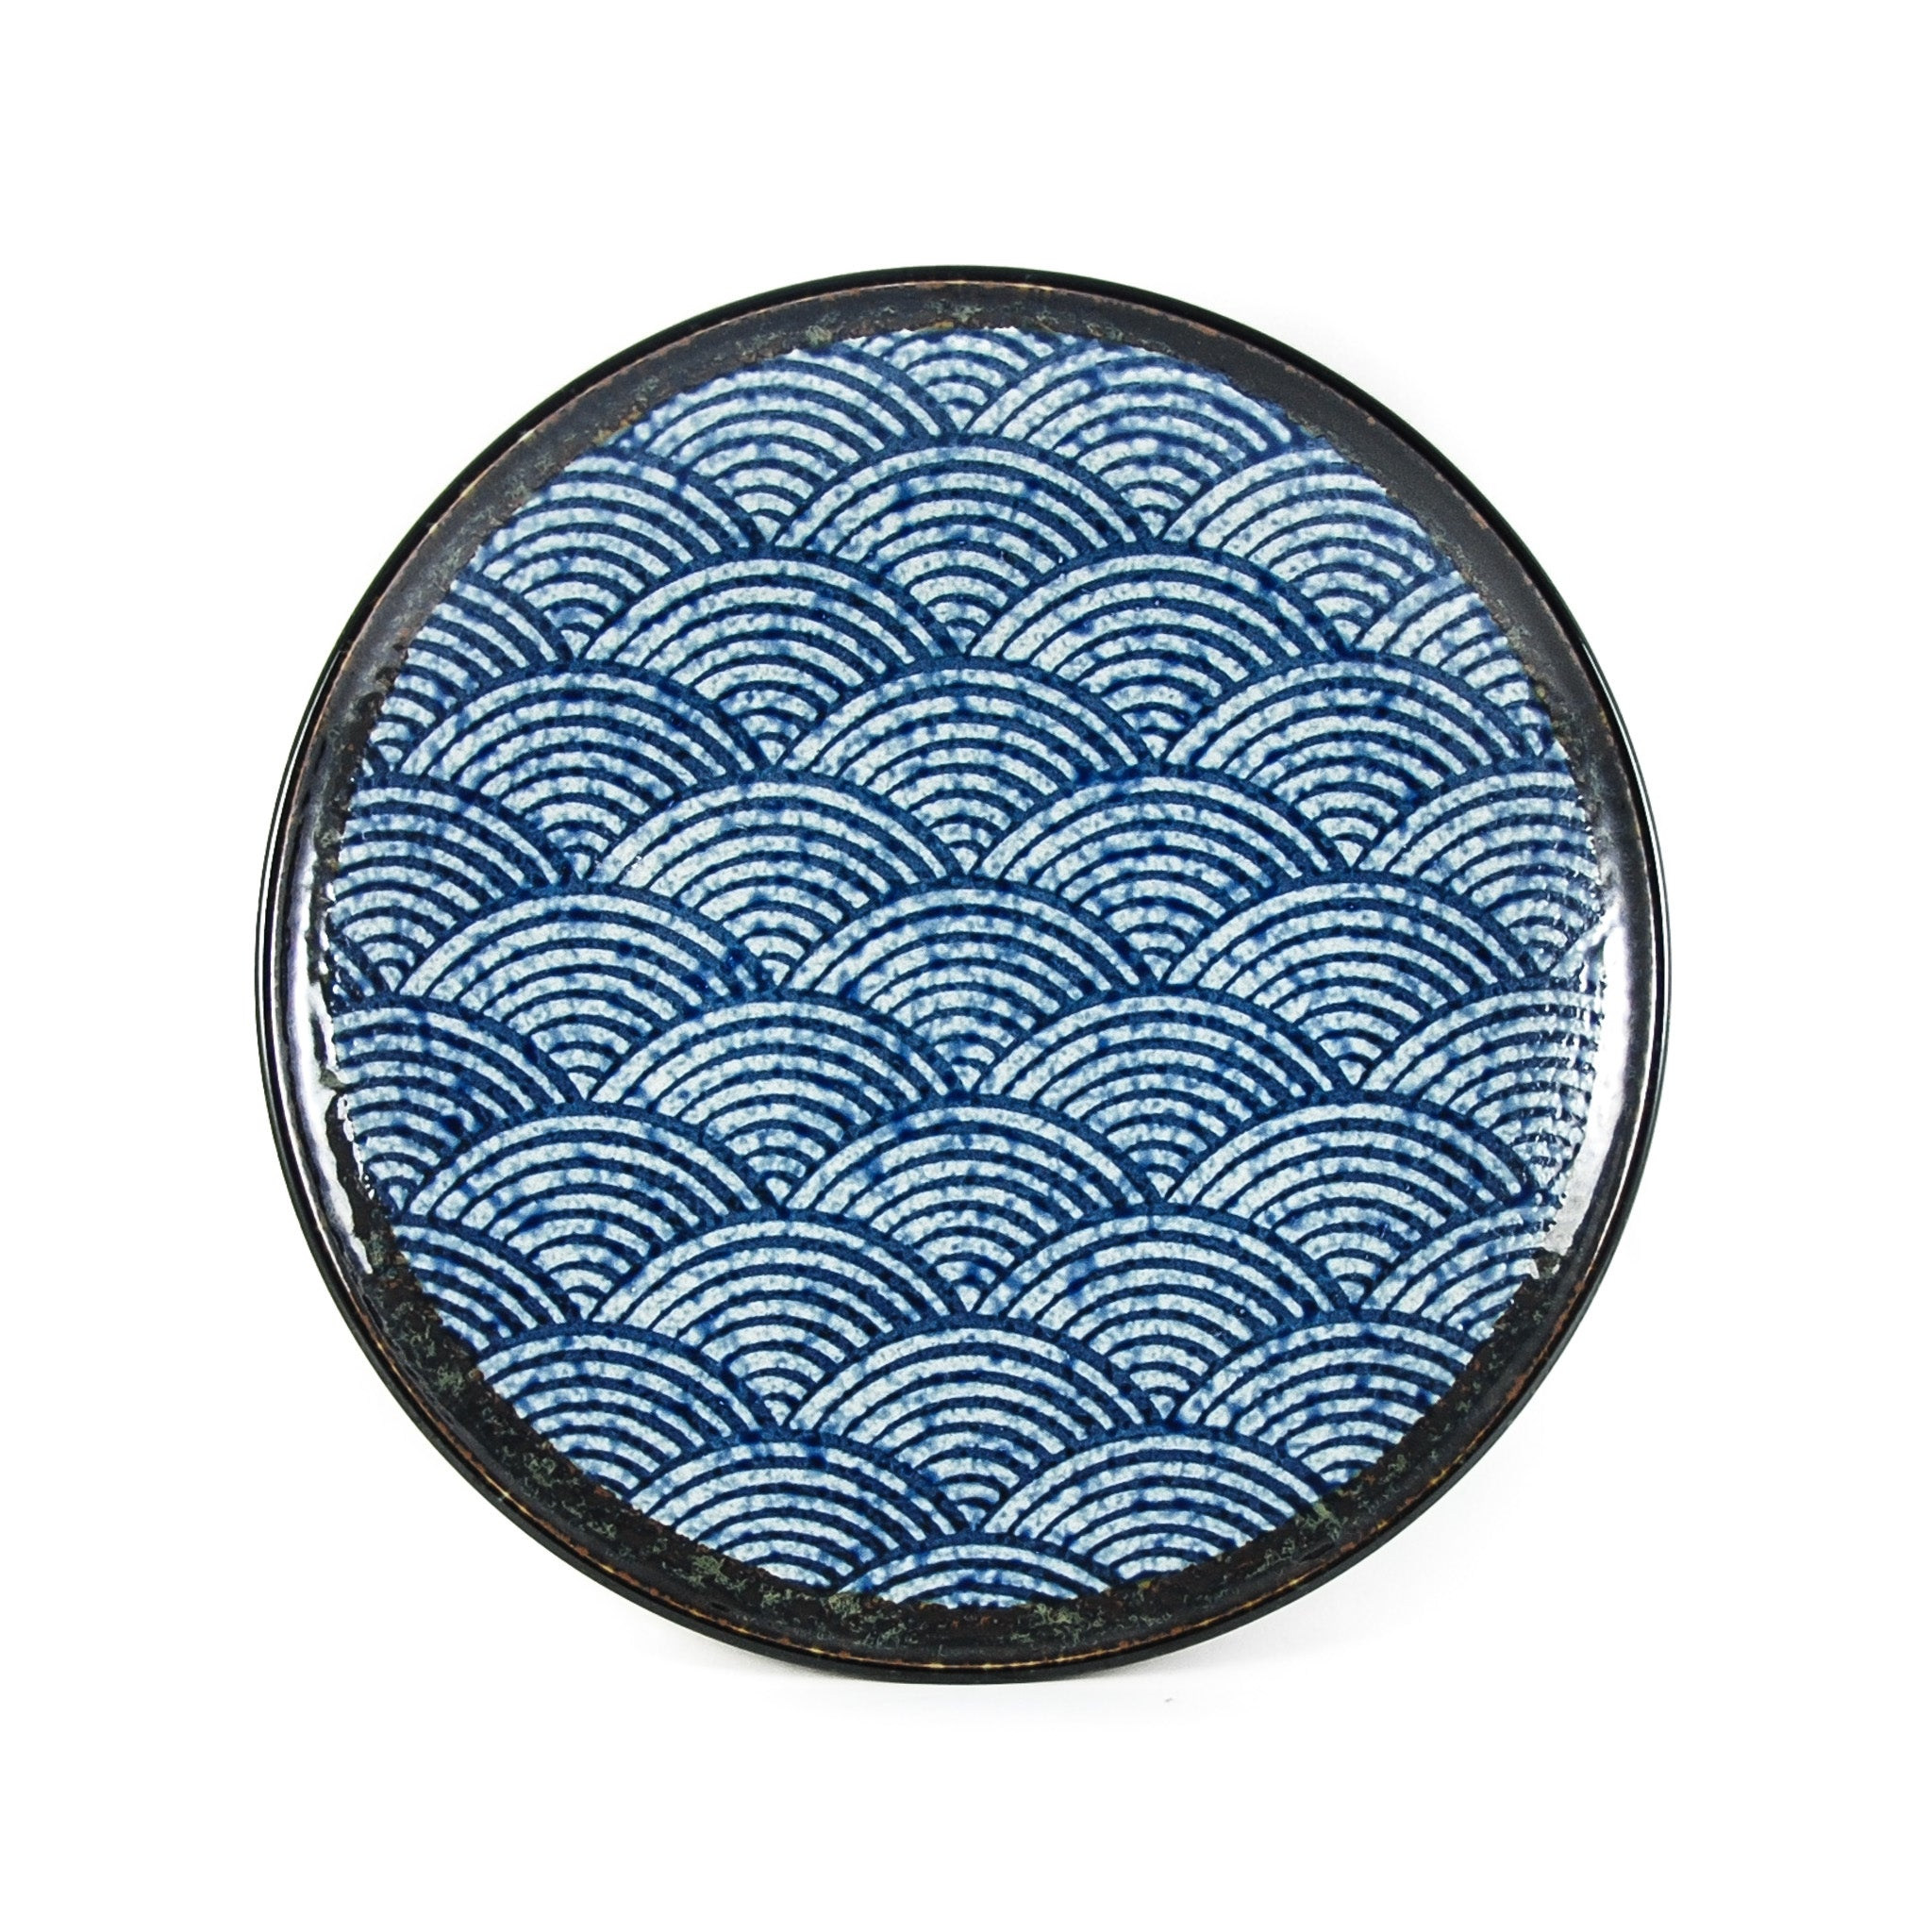 Kiji Stoneware & Ceramics Blue Wave Dinner Plate Tableware Japanese Tableware